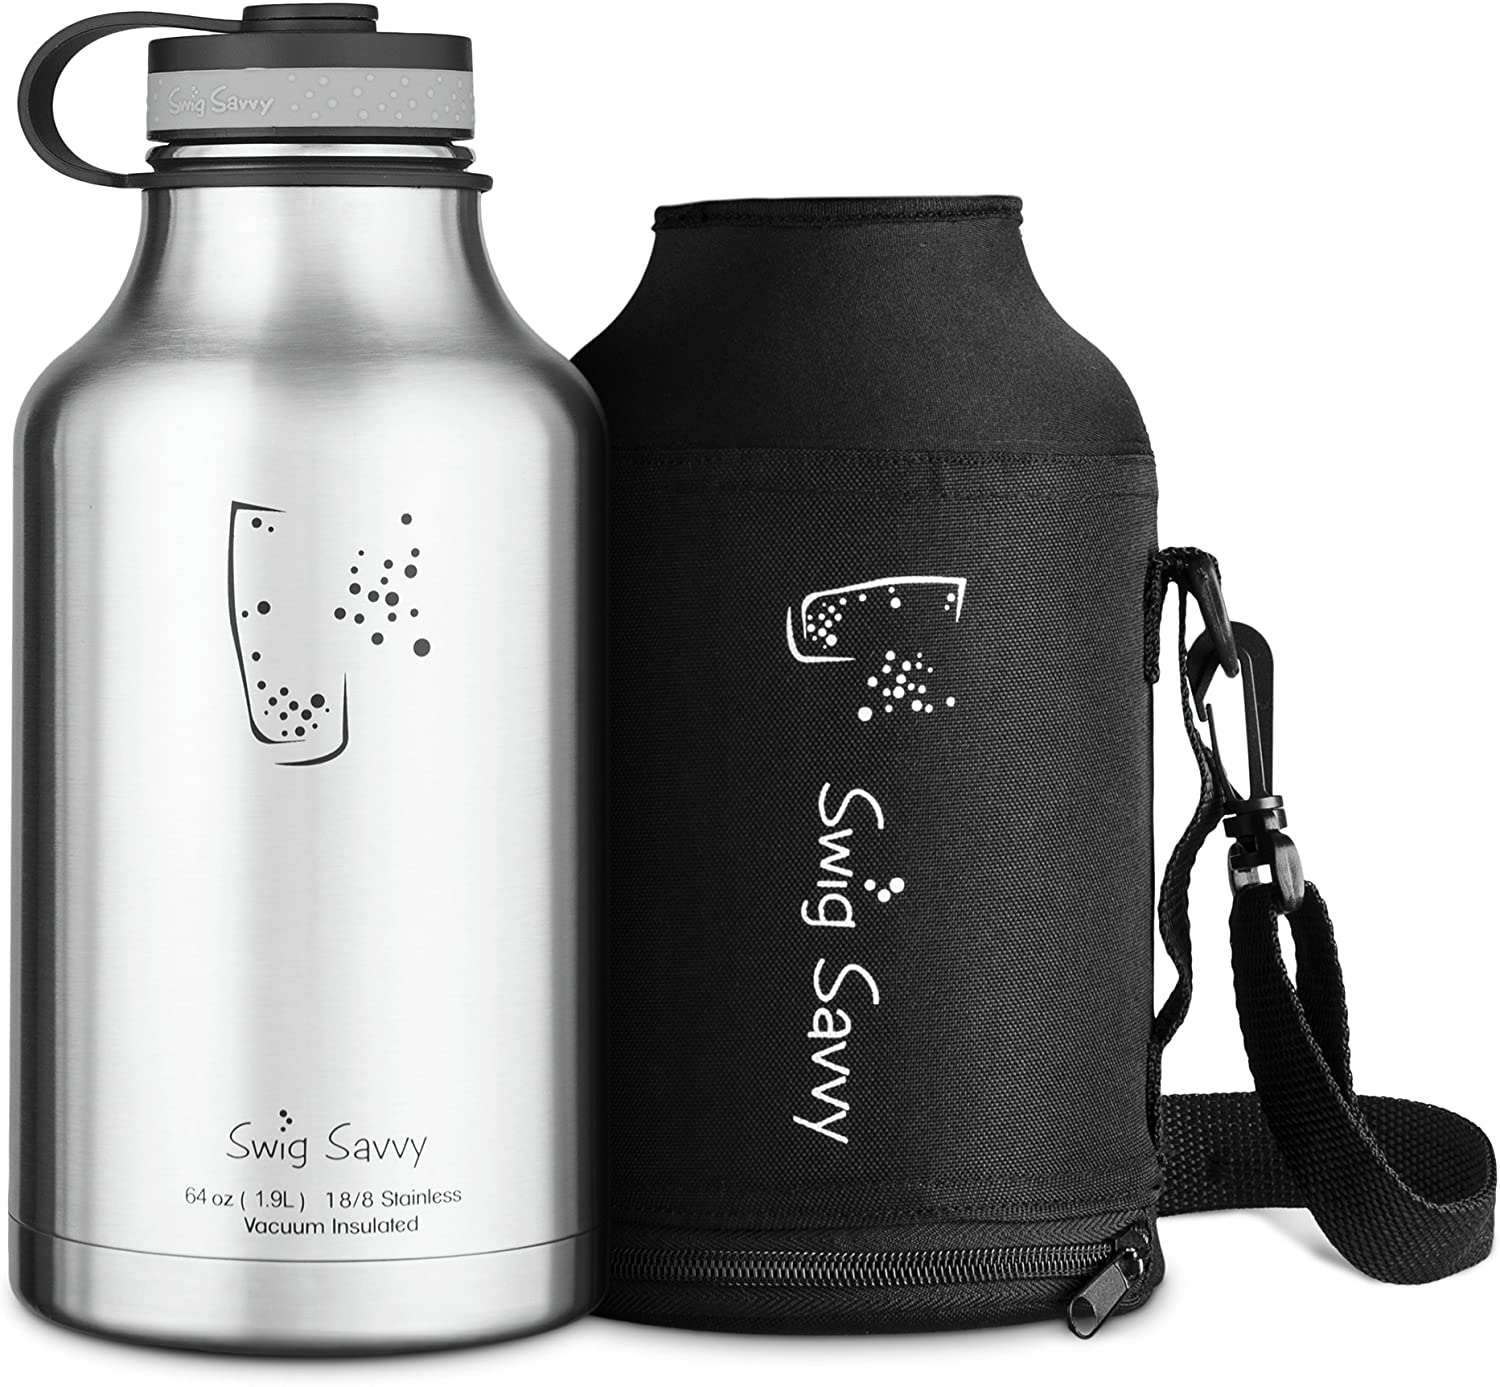 Stainless Steel Vacuum Insulated Keep Beverages Cold 64-Ounce Wide Mouth Growler